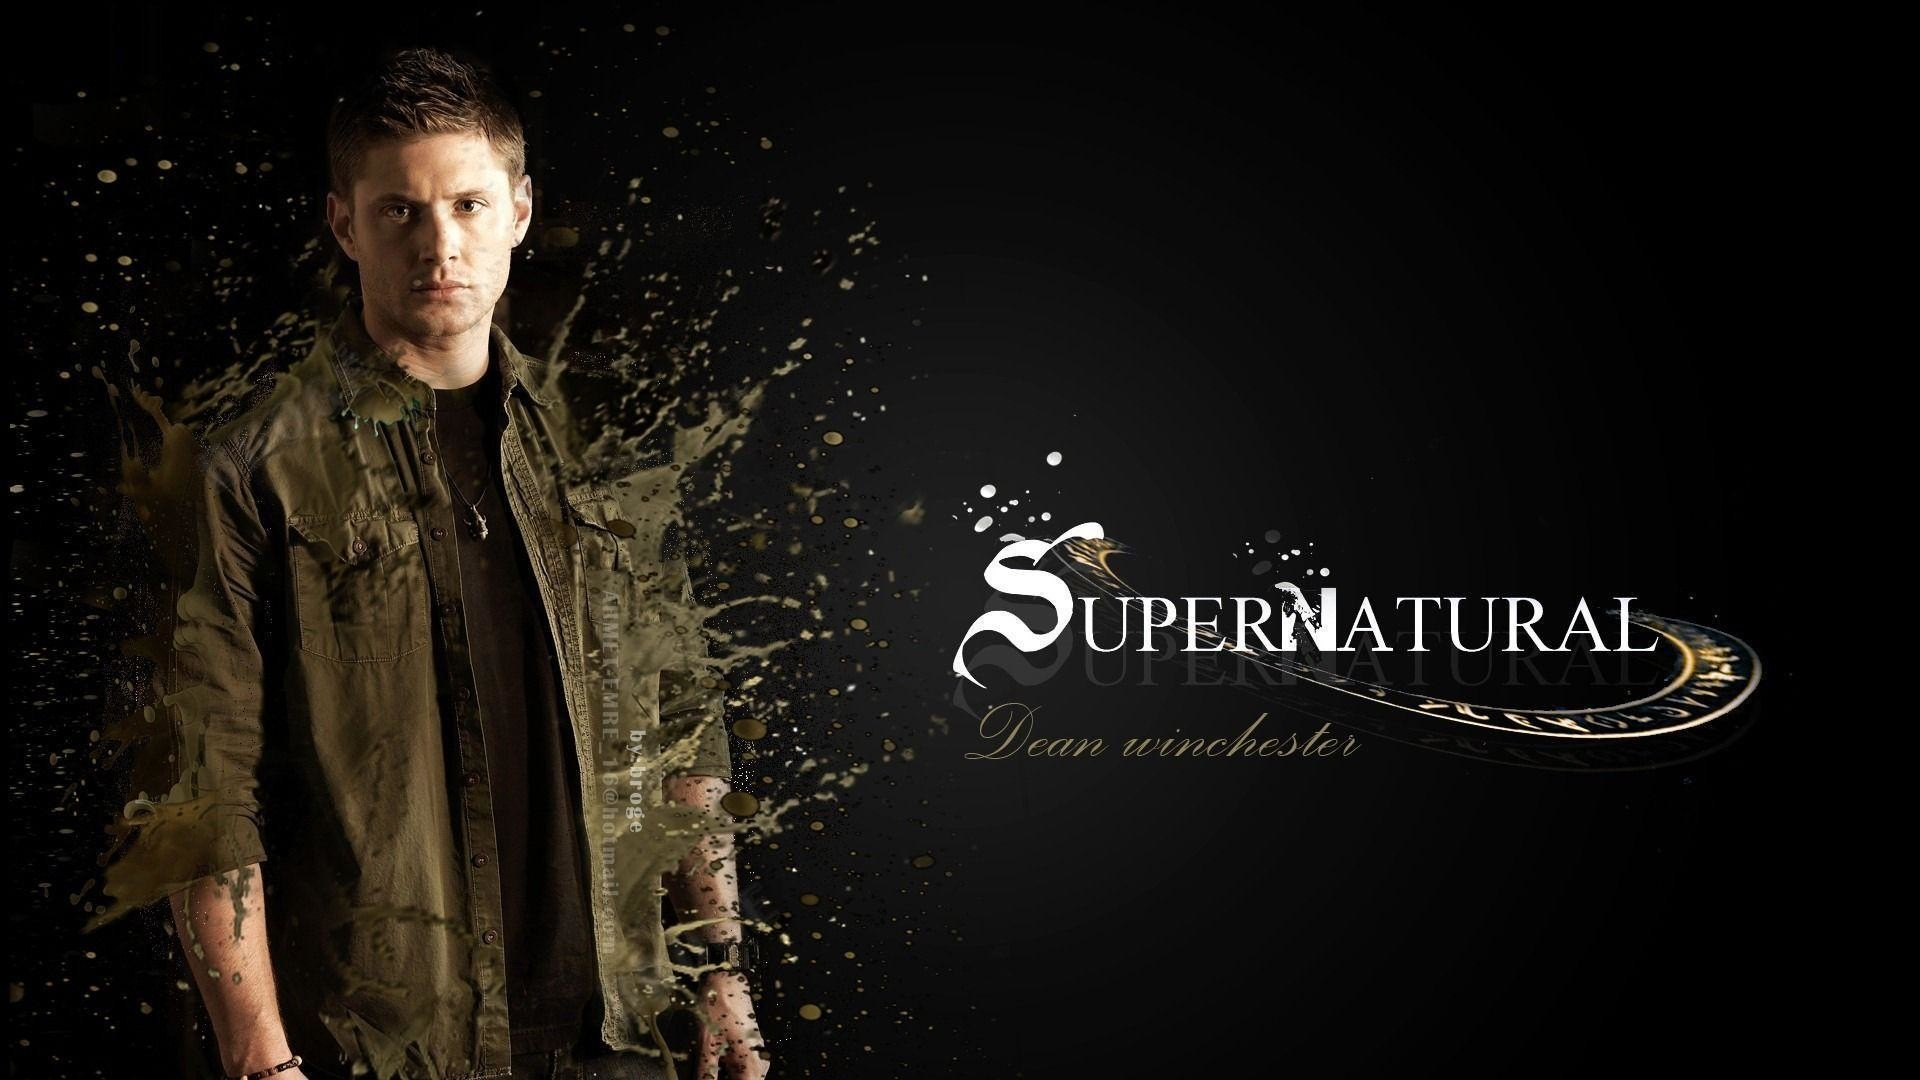 1920x1080 Dean Winchester-Supernatural-HD Wallpaper -  wallpaper .